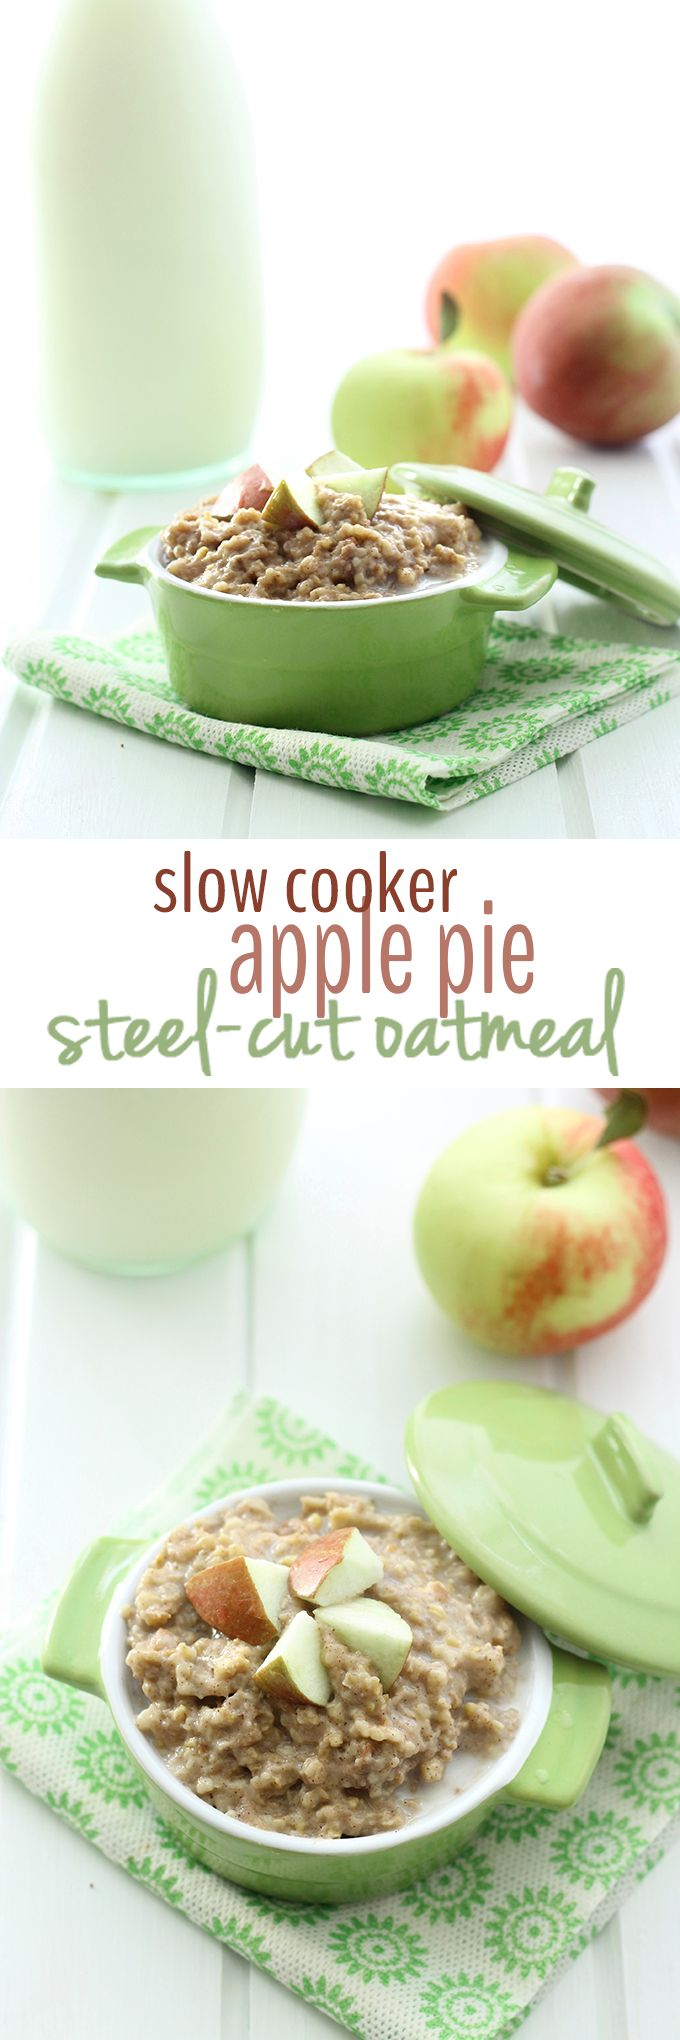 This Slow Cooker Apple Pie Steel-Cut Oatmeal makes the perfect, hands-off healthy breakfast for Fall. Just throw in the Slow Cooker and you have breakfast in the AM.